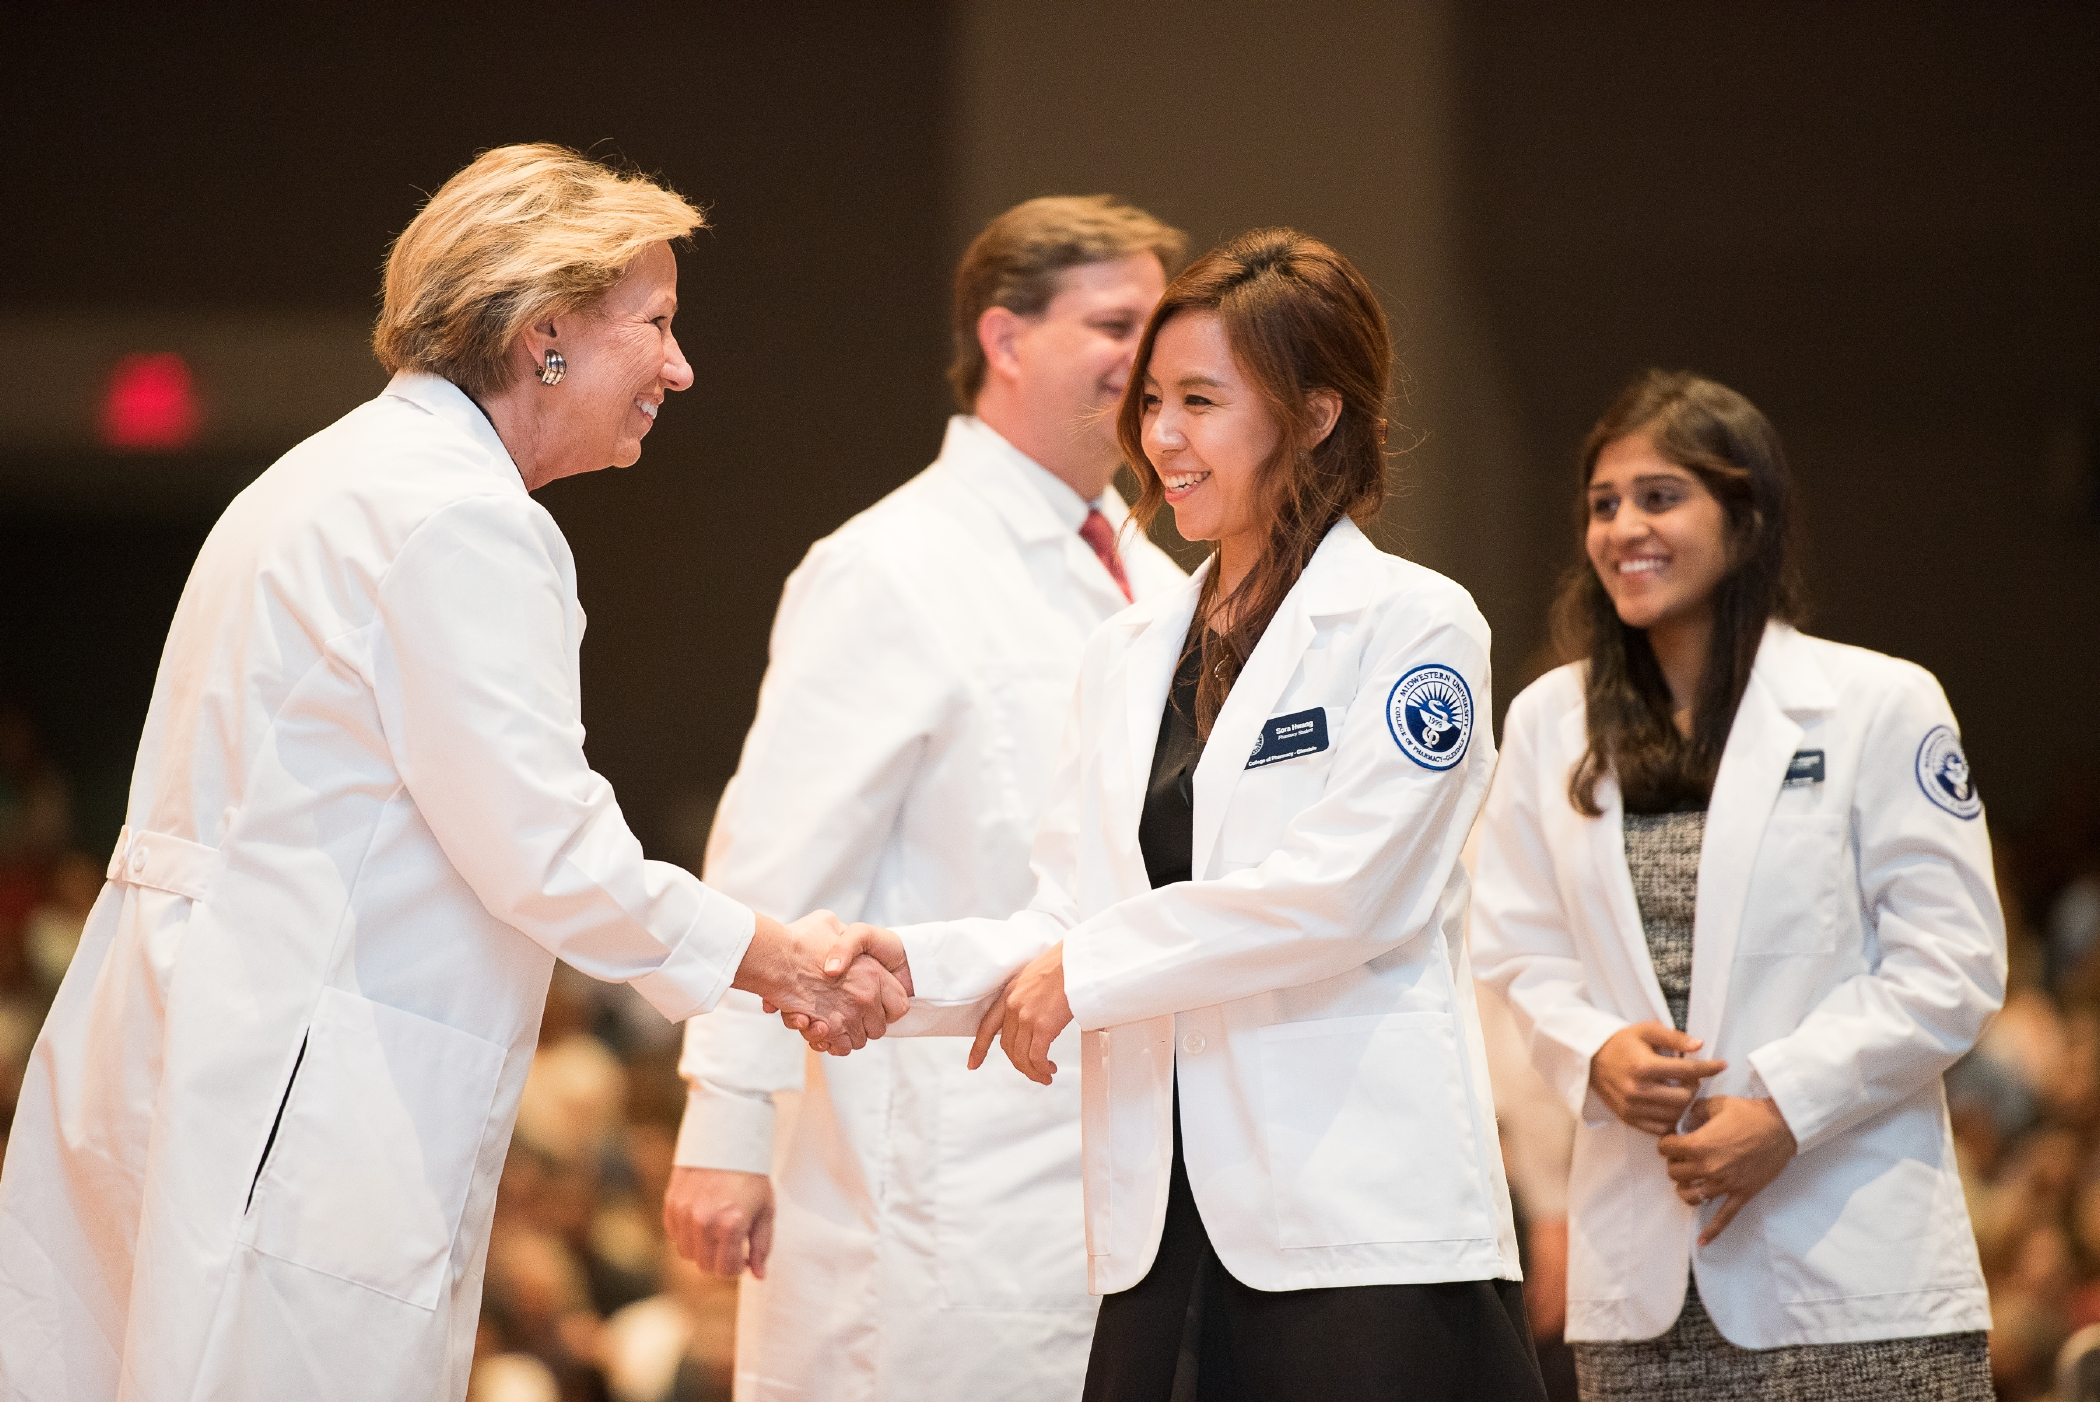 The White Coat Ceremony